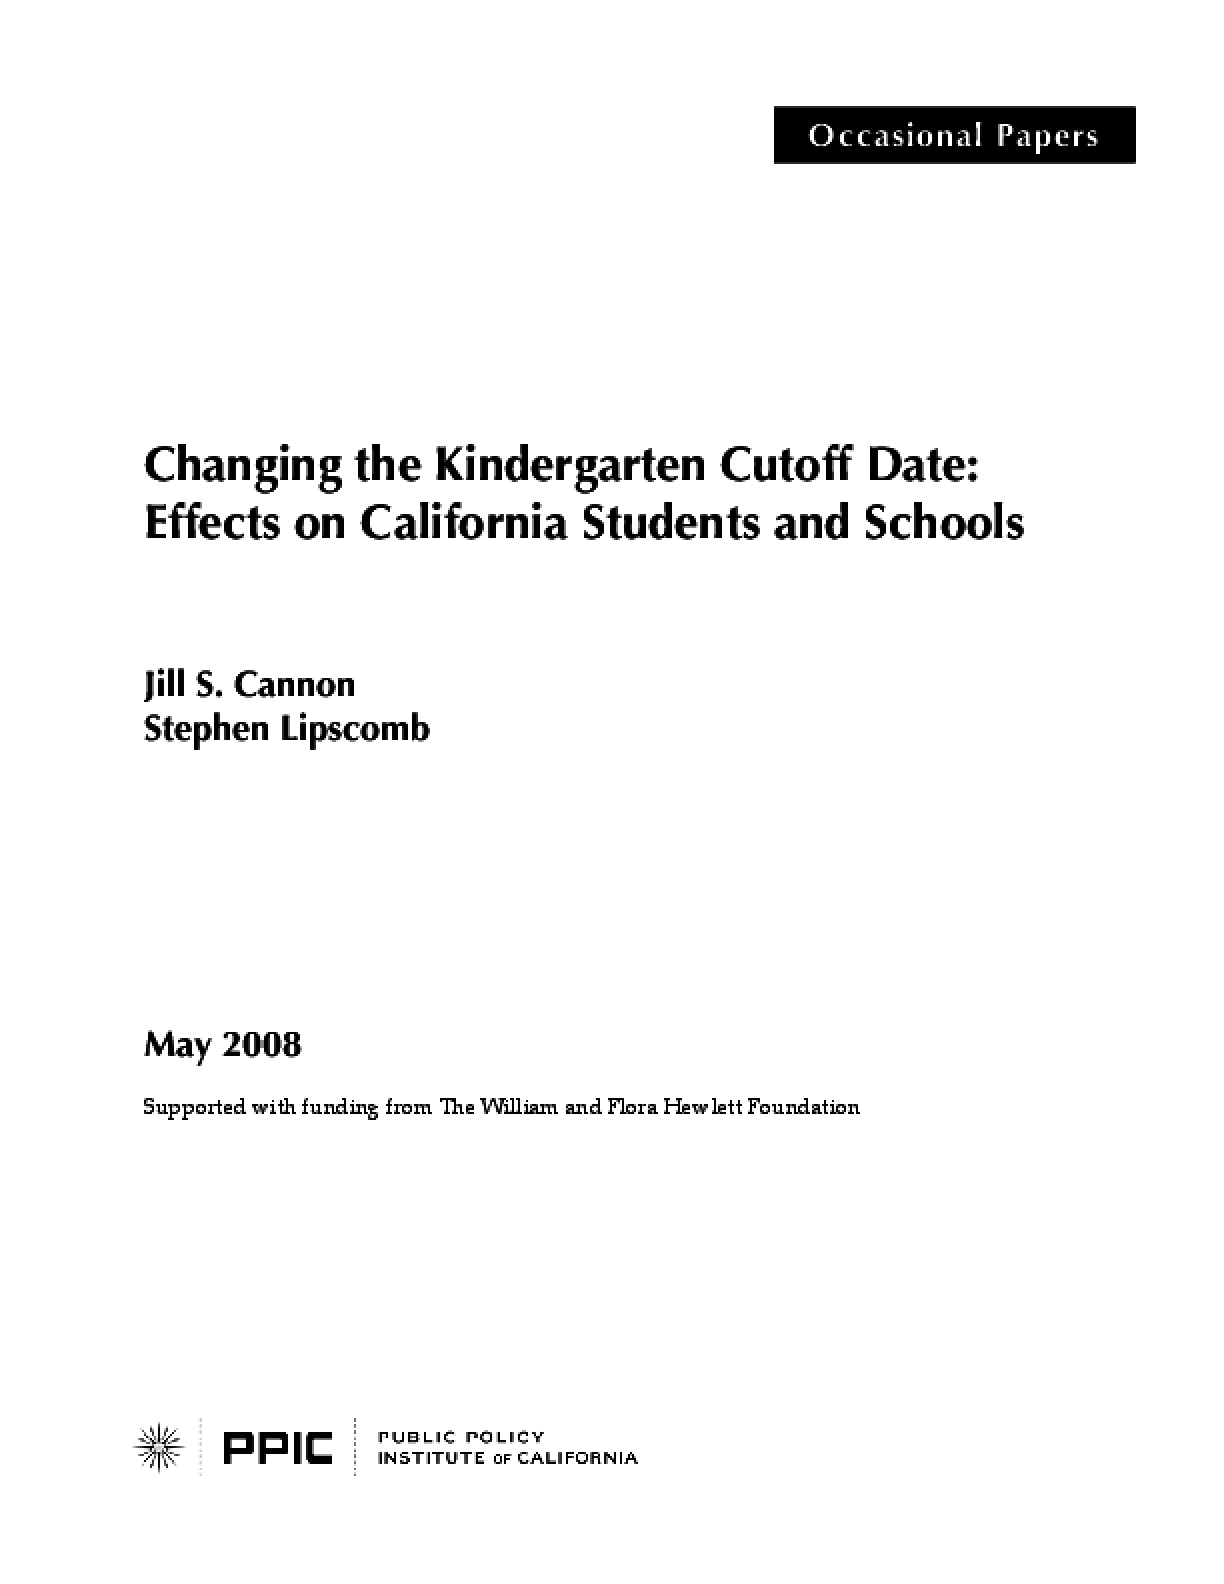 Changing the Kindergarten Cutoff Date: Effects on California Students and Schools